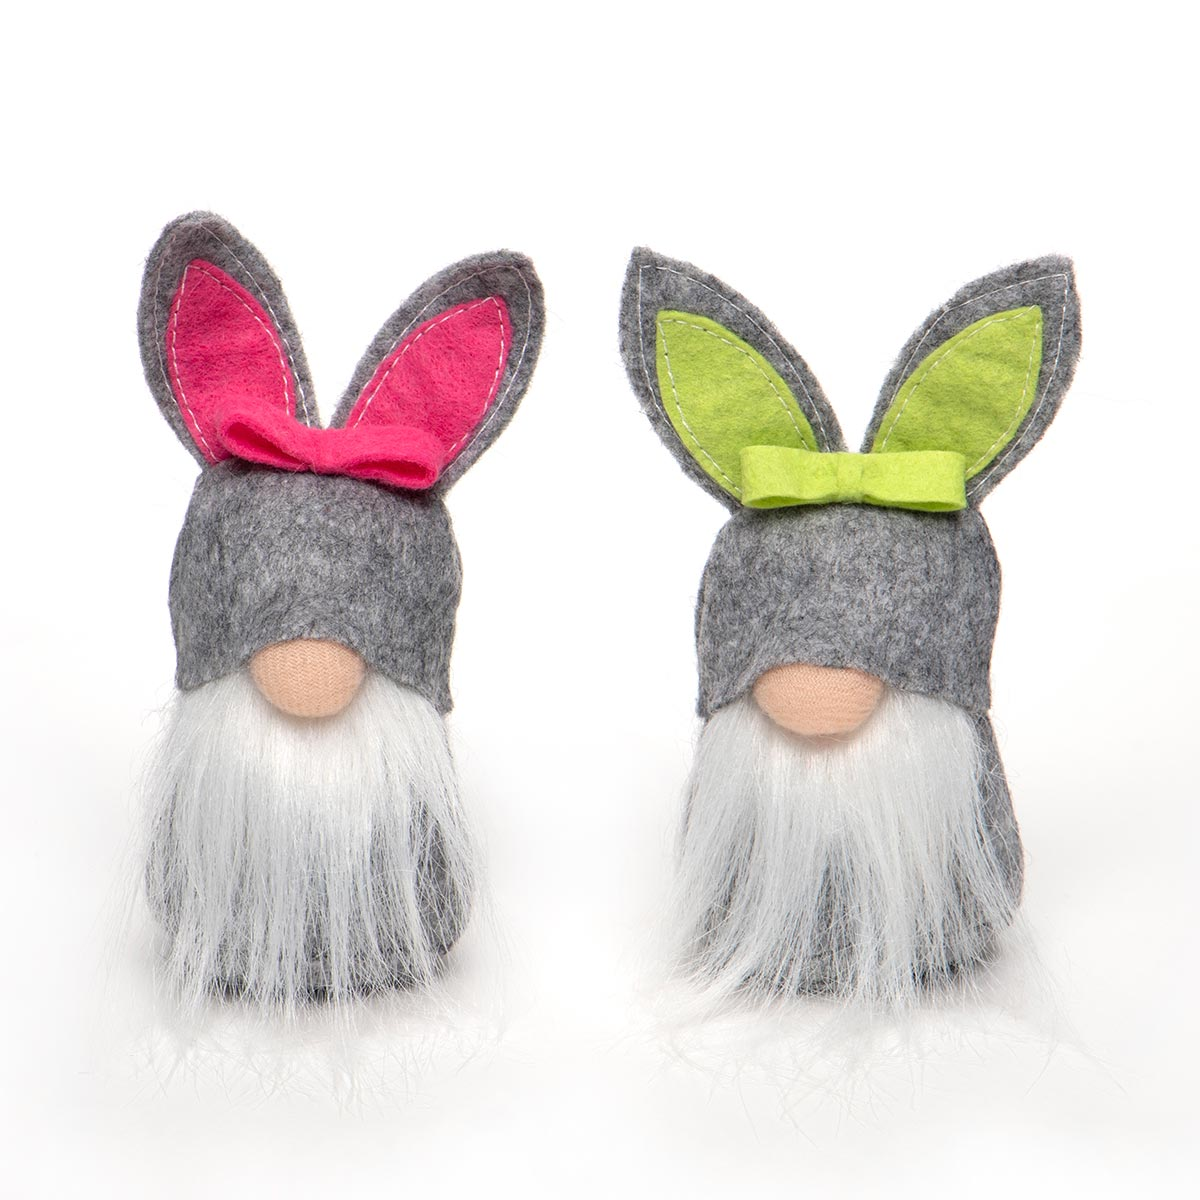 MINI BUNNY GNOME WITH , WHITE BEARD, BUNNY TAIL AND GREY BUNNY H